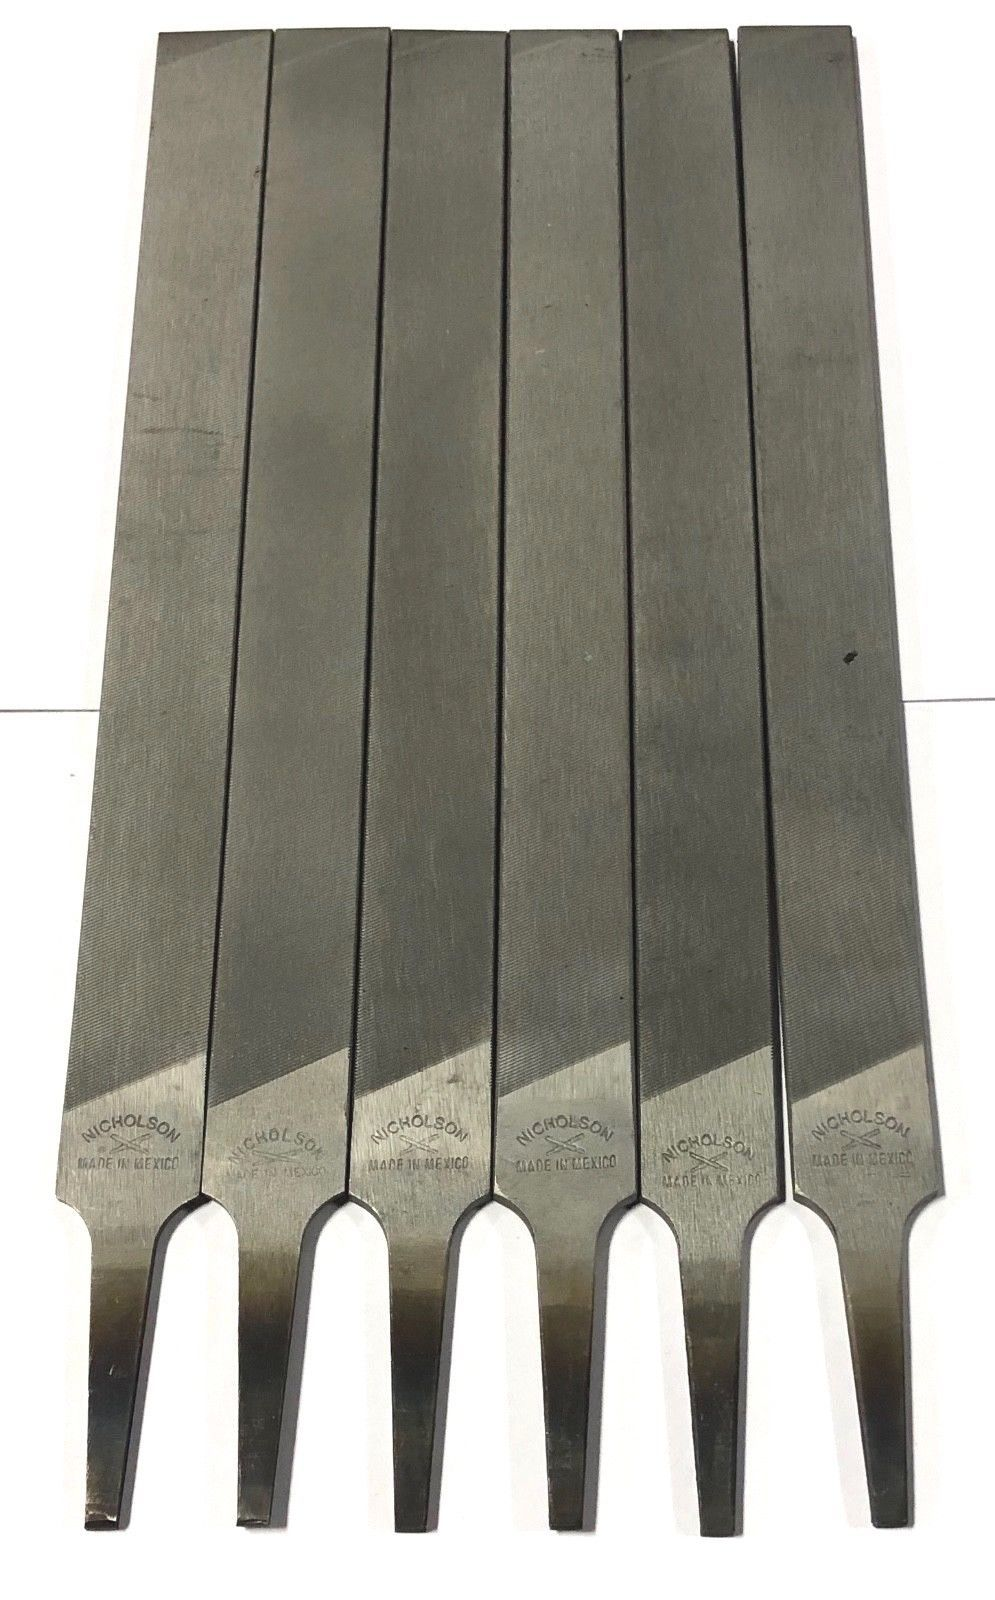 Nicholson 8 Farmers Own File Axe Sharpening Agricultural Tools 6 Pack 06649N